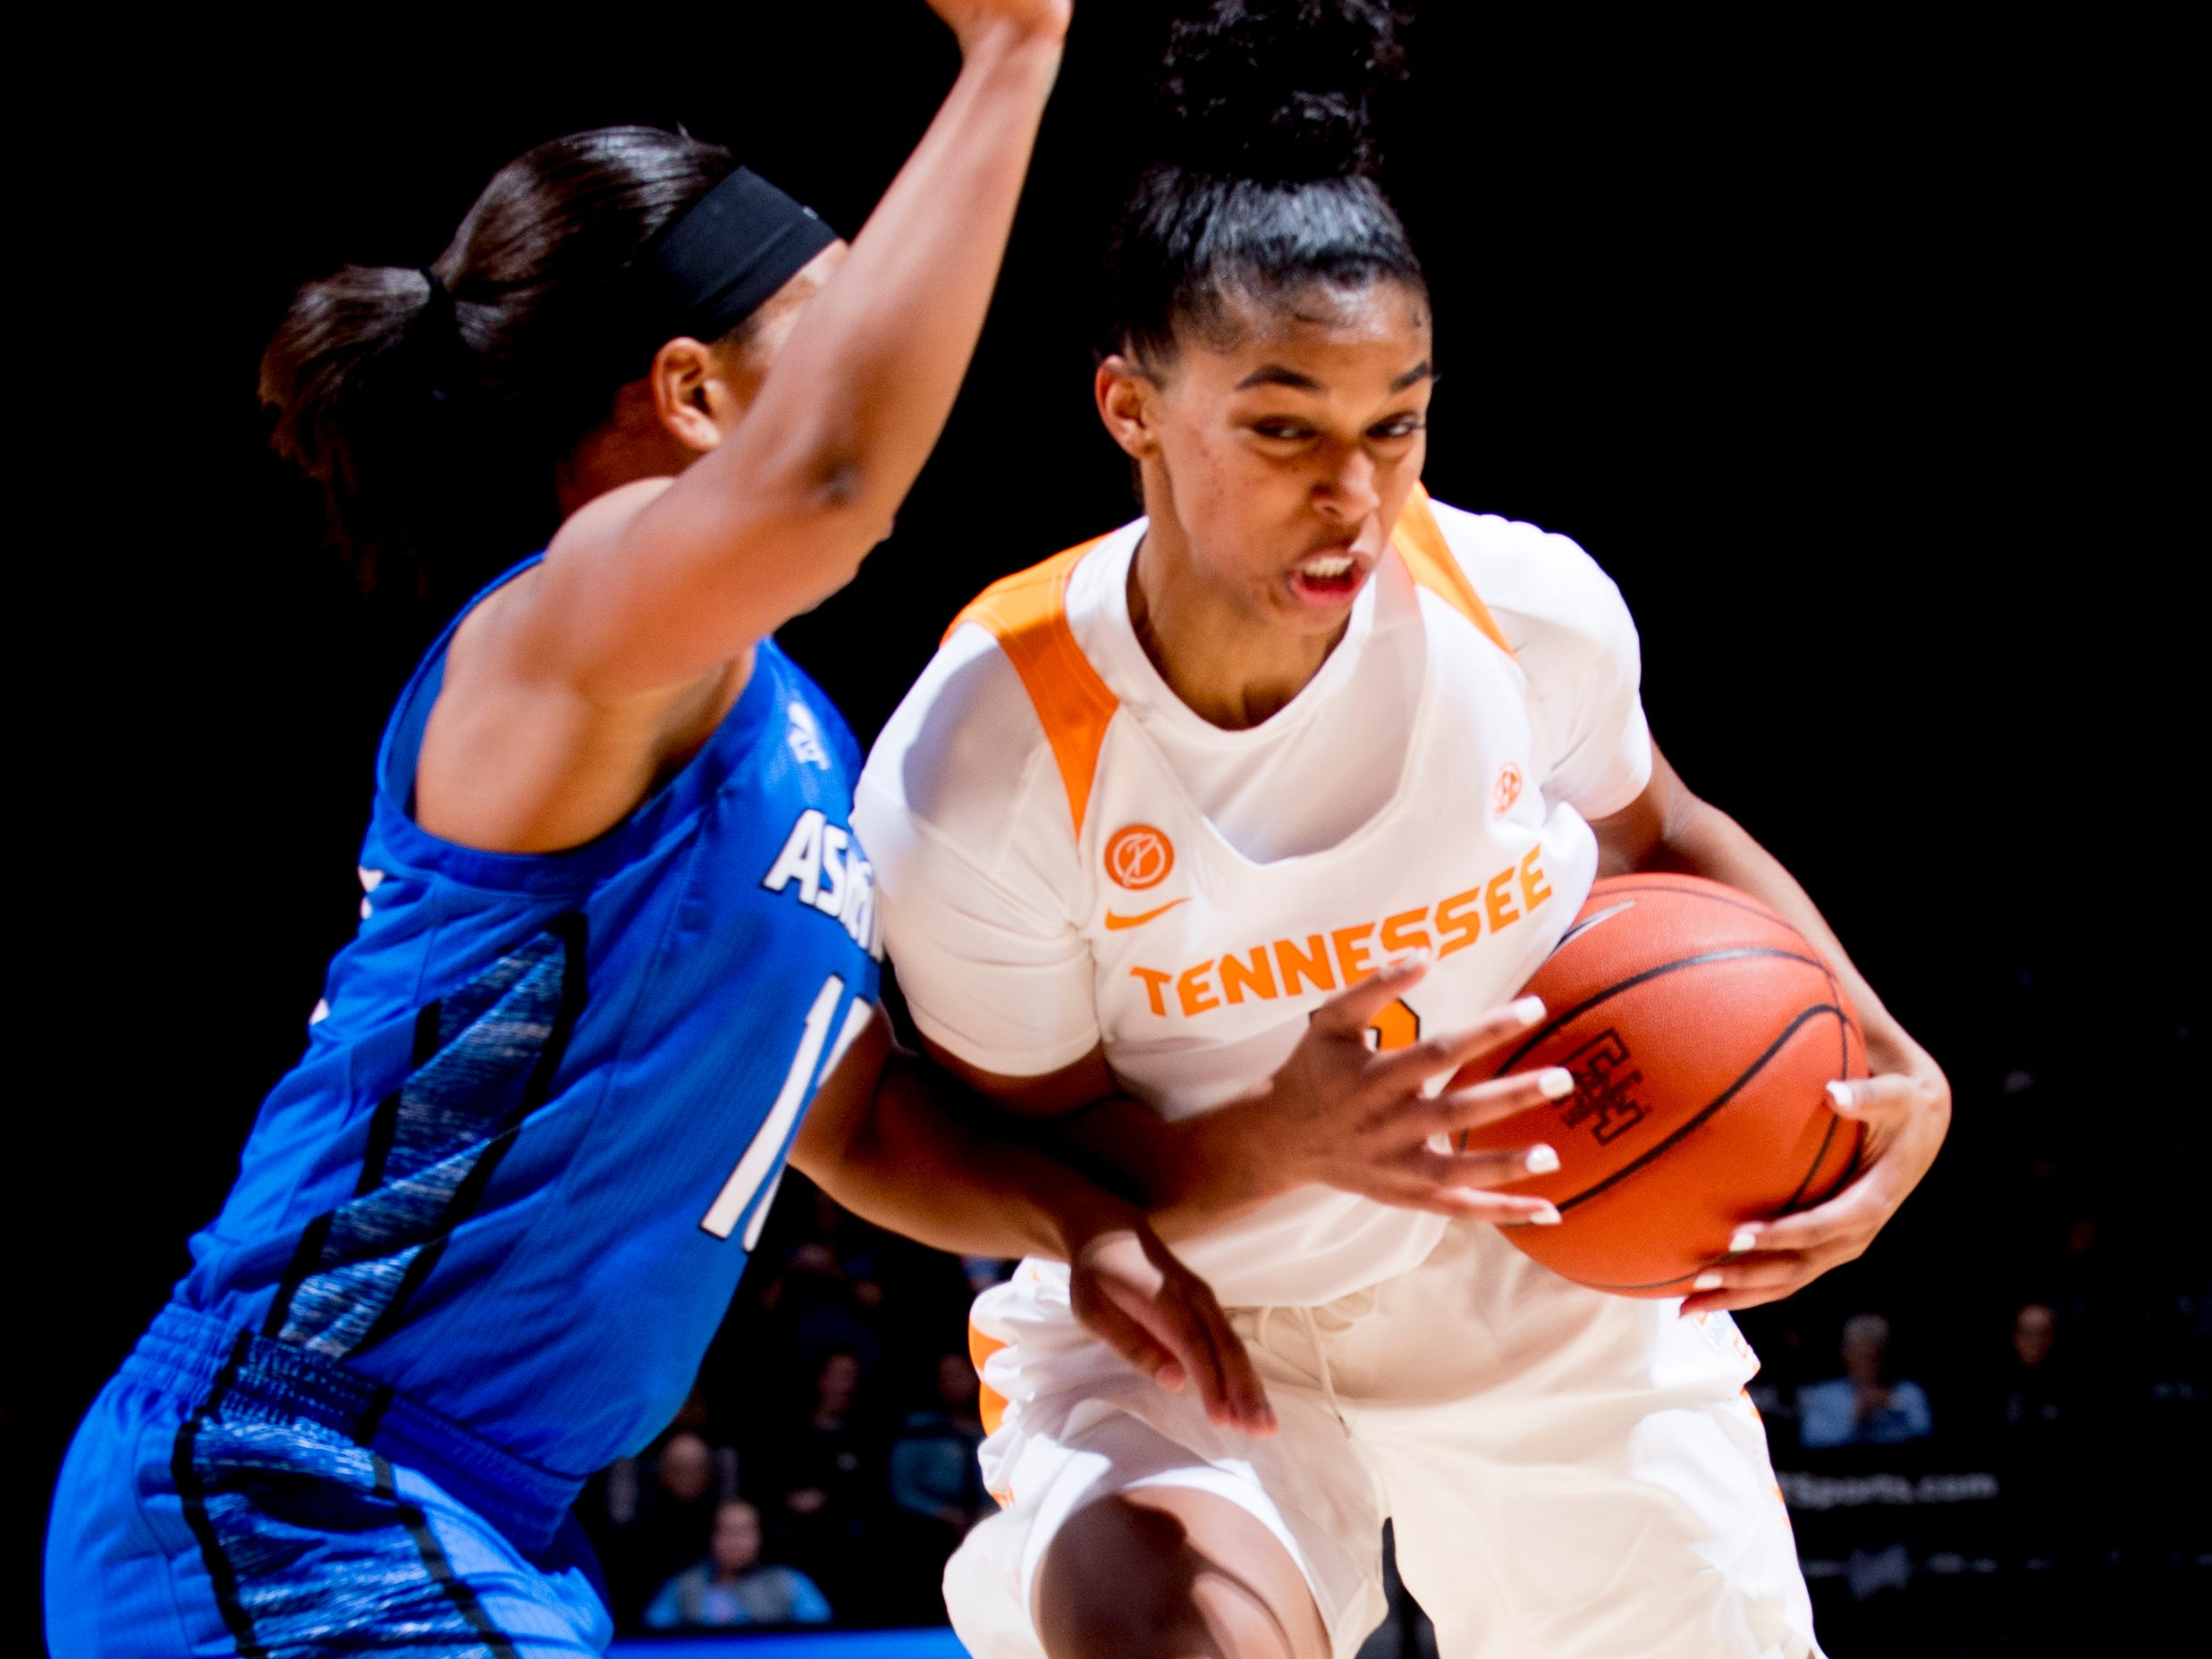 Tennessee guard Evina Westbrook (2) tries to power past UNC Asheville  guard Jimeshia Lawson (11) during a game between Tennessee and UNC Asheville at Thompson-Boling Arena in Knoxville, Tennessee on Wednesday, November 14, 2018.